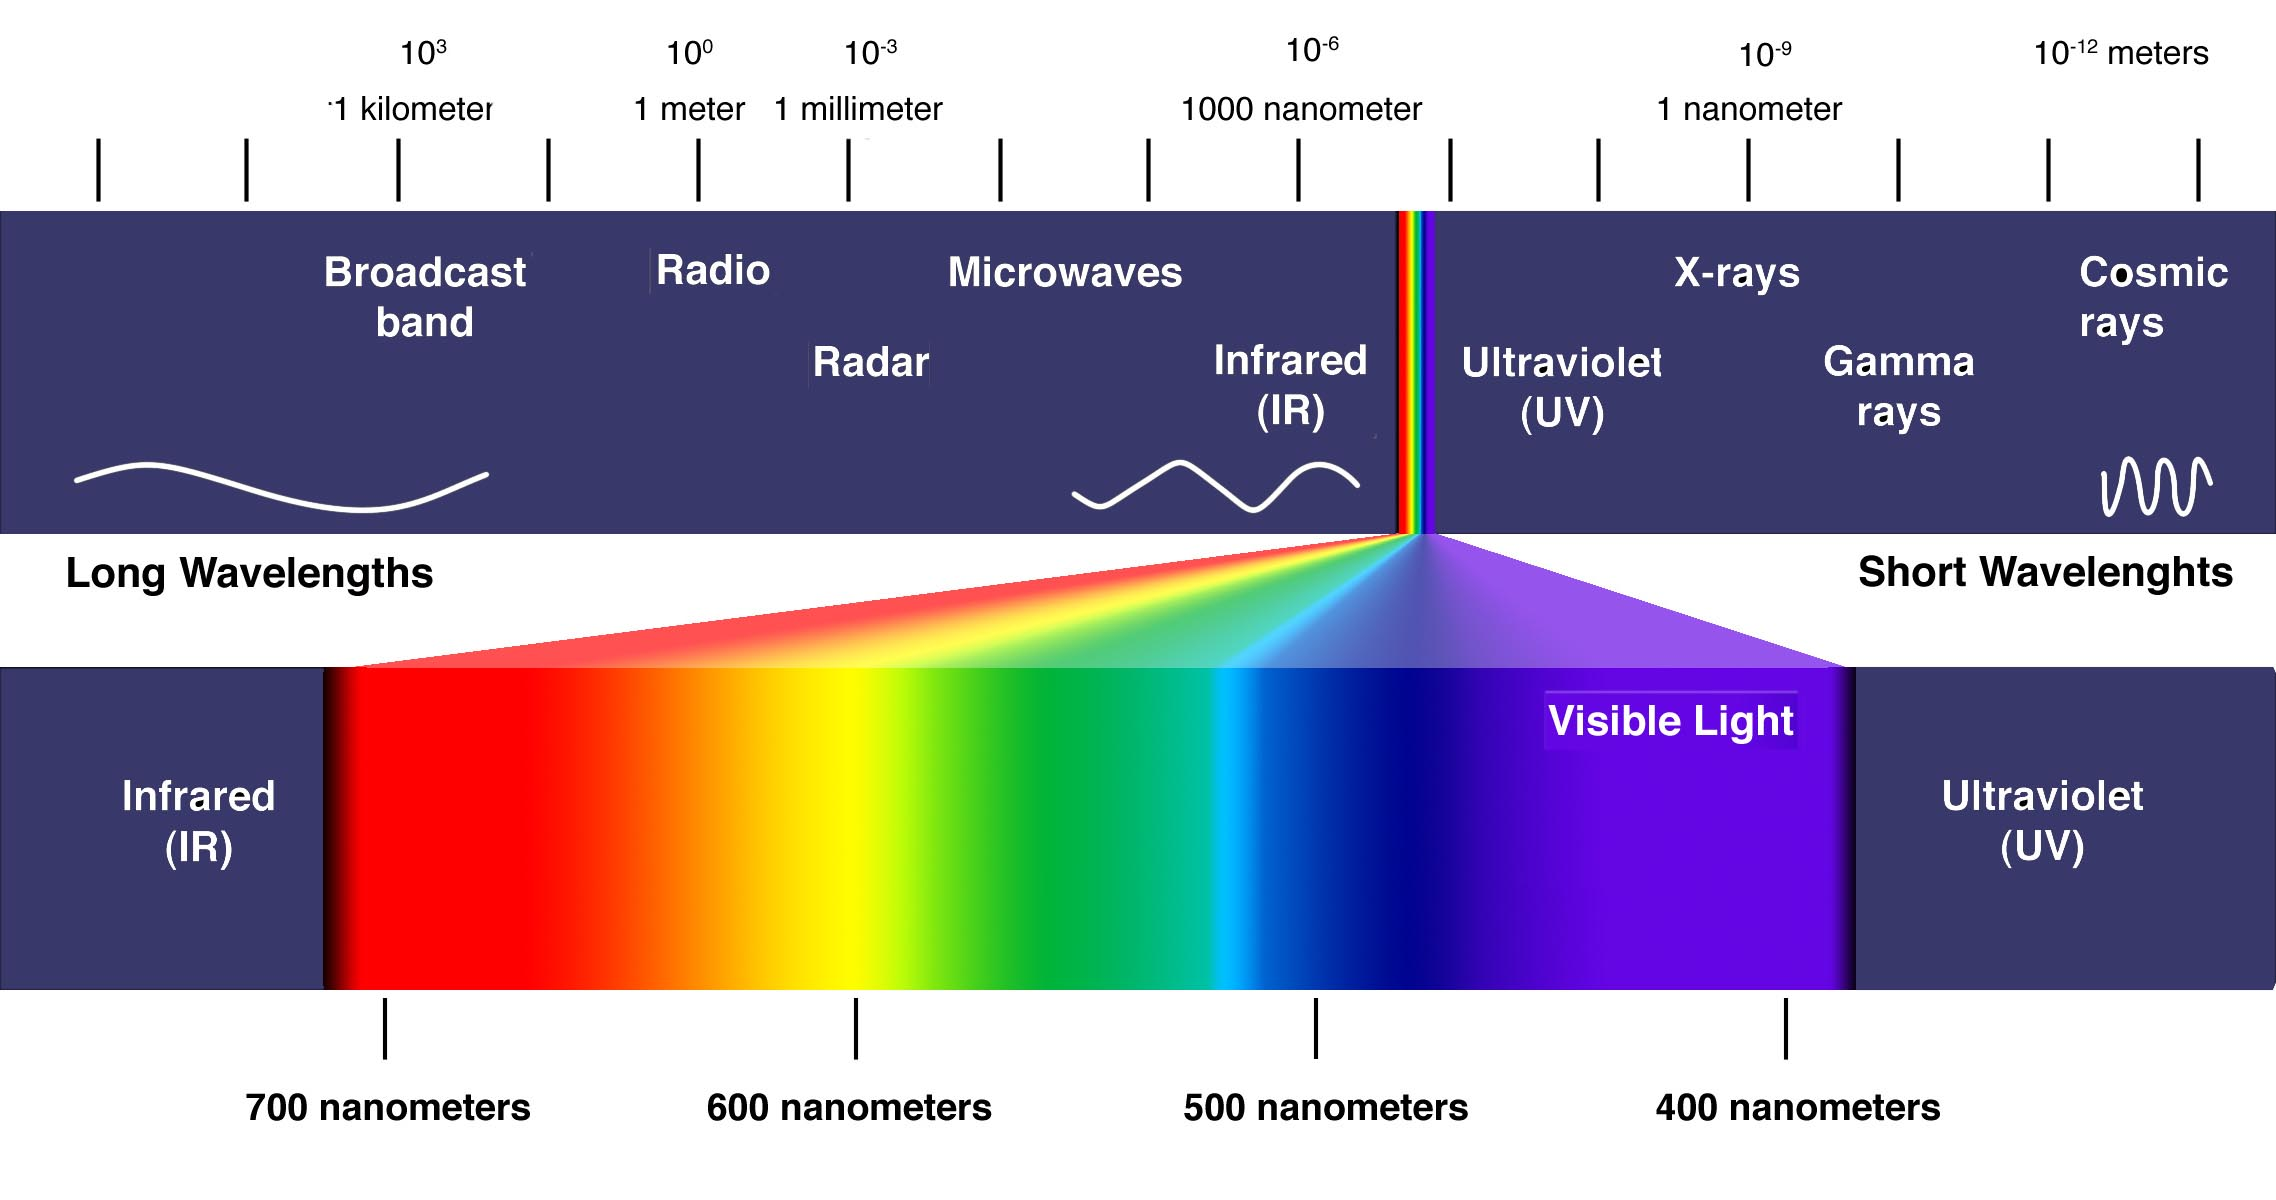 Wavelengths from Longest (Delta) to Shortest (Gamma/Cosmic) and the further dissipation of light into the Visible Spectrum